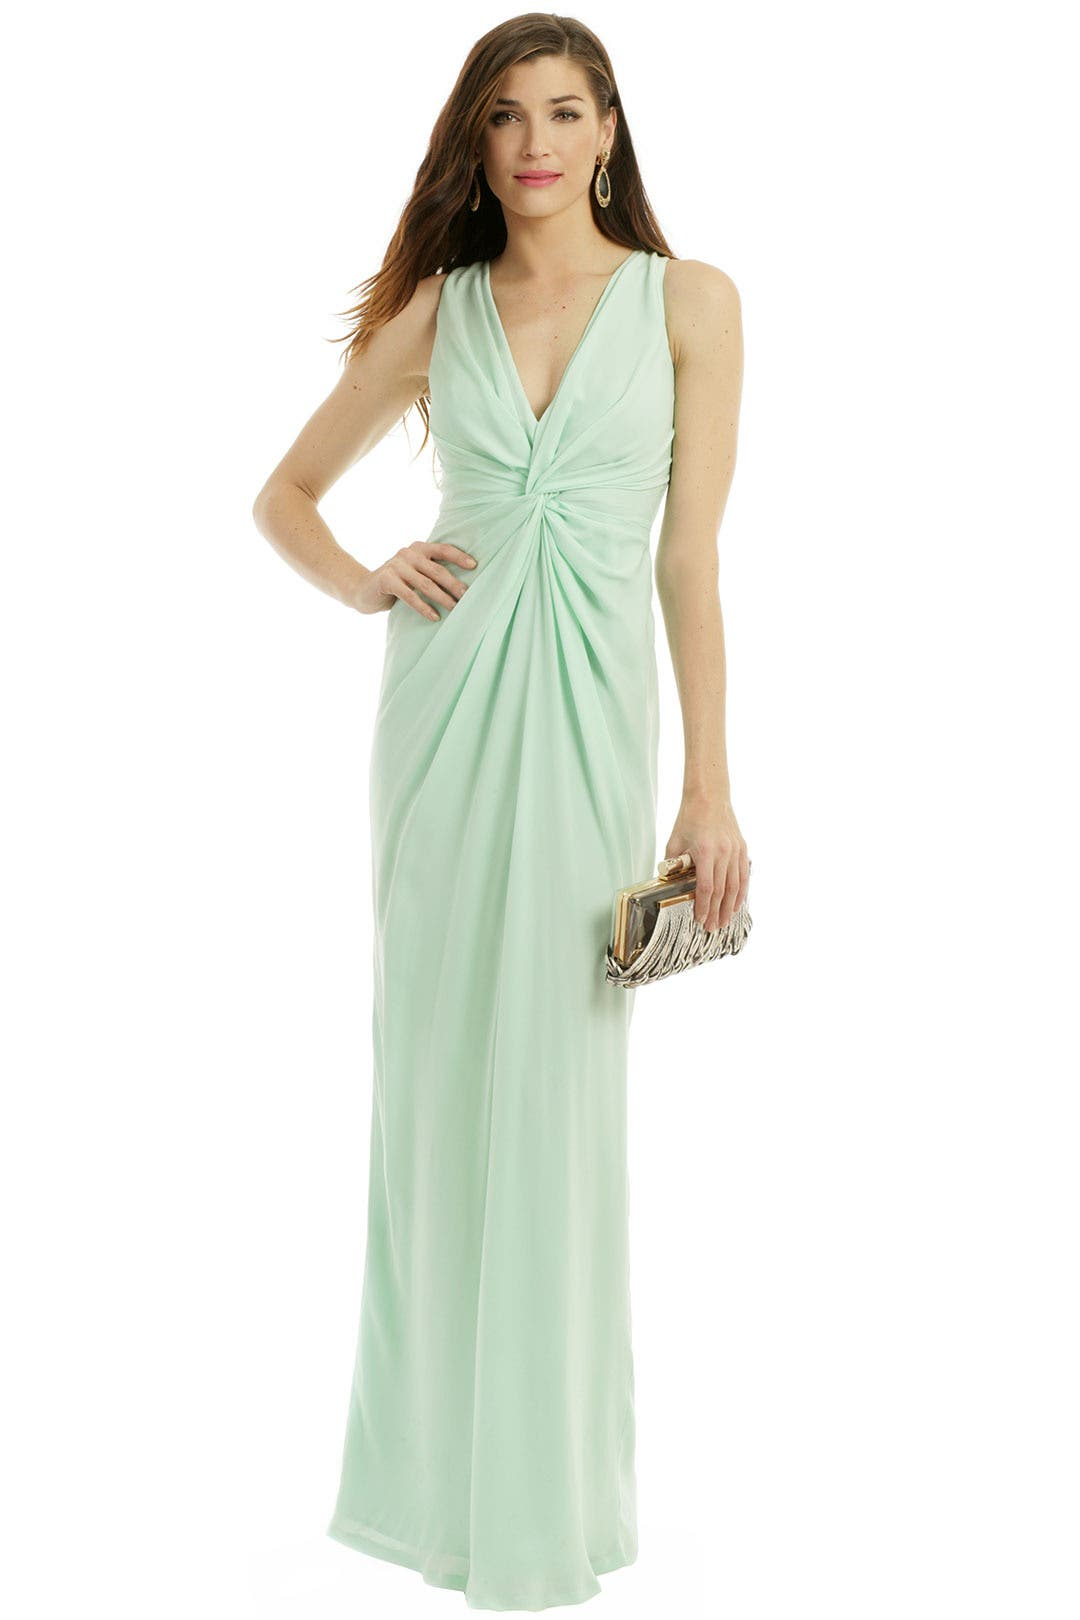 Minty Fresh Gown by Raoul